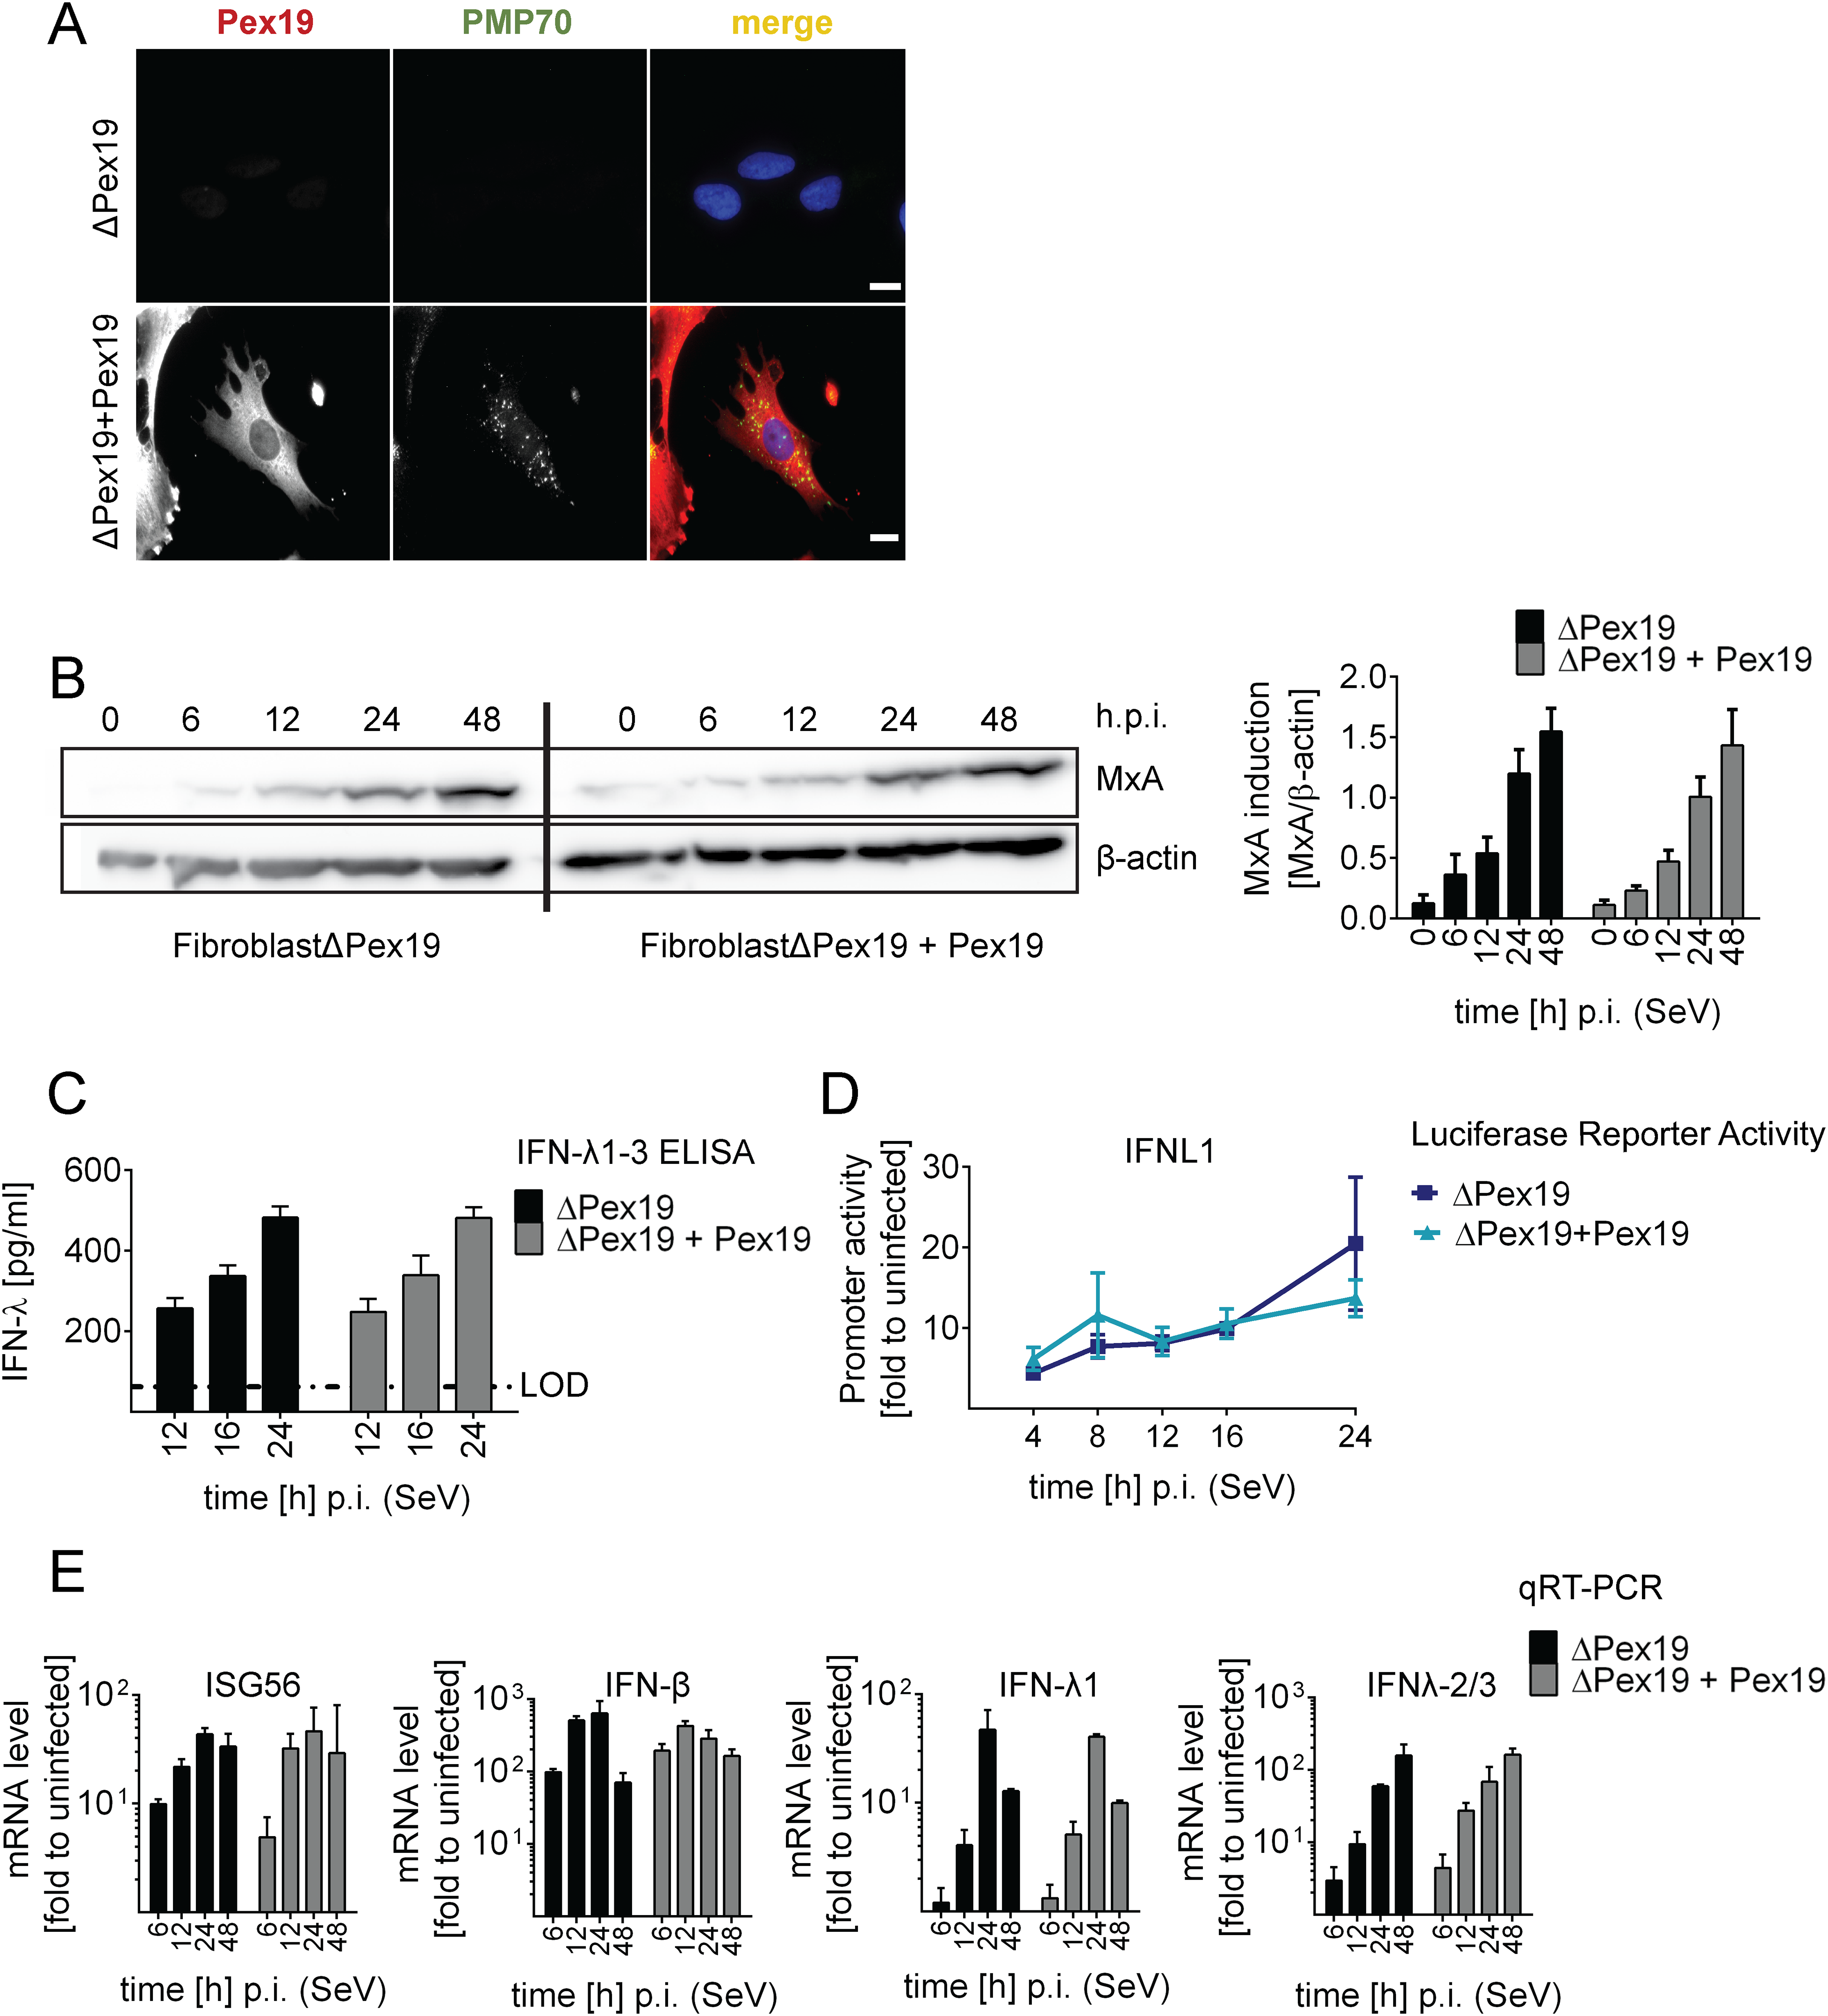 Activation of type I and III IFN response in peroxisome-deficient human cells.